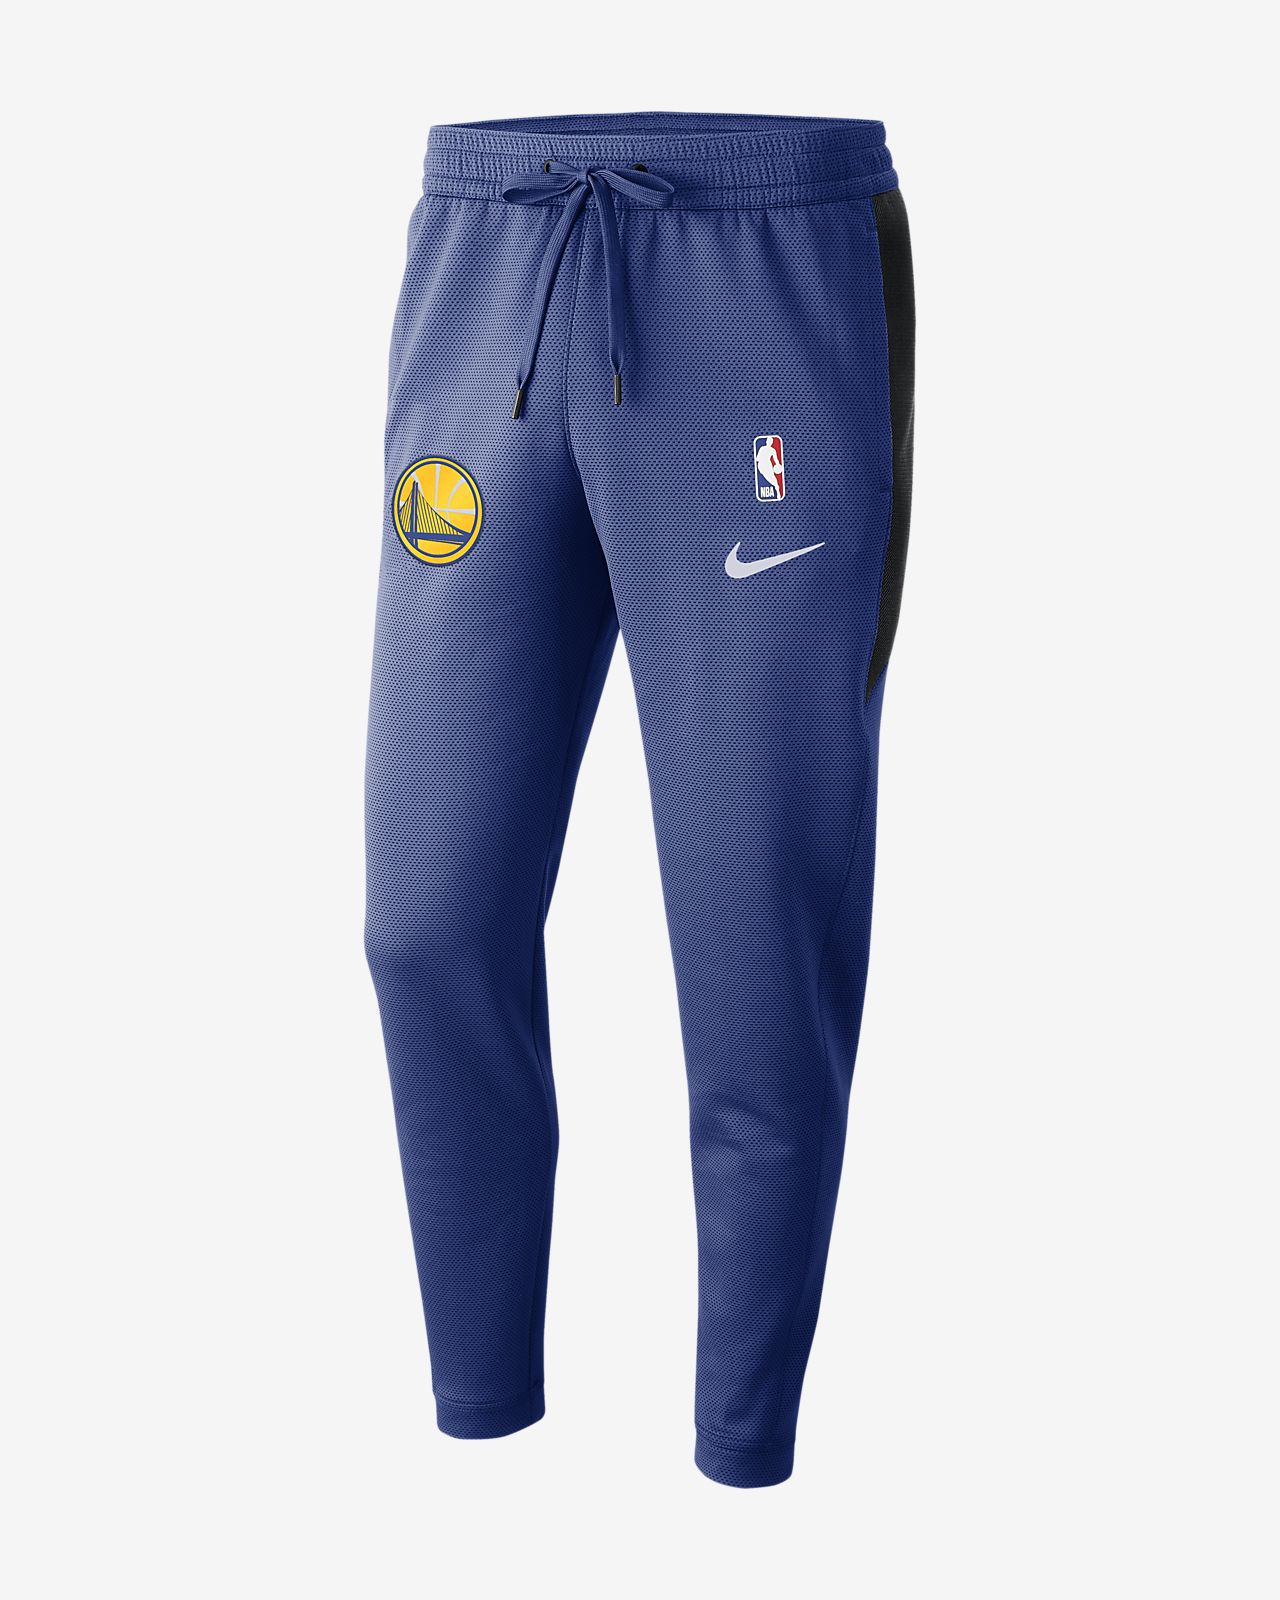 Мужские брюки НБА Golden State Warriors Nike Therma Flex Showtime